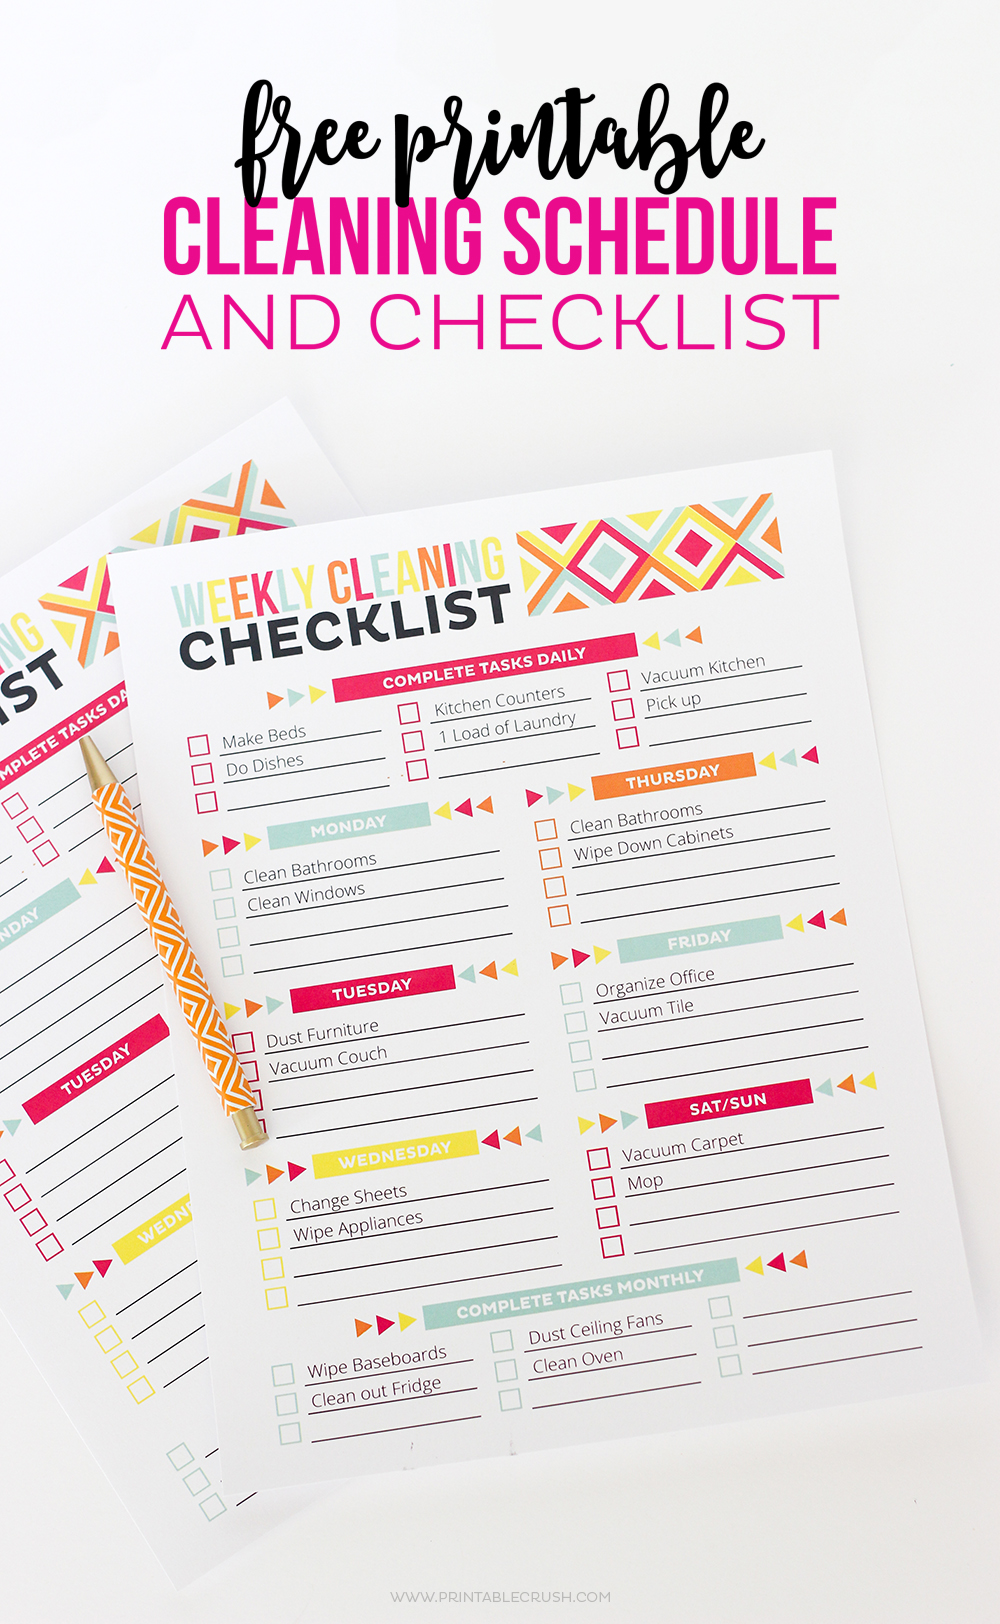 Free printable cleaning schedule and checklist printable for House cleaning and organizing